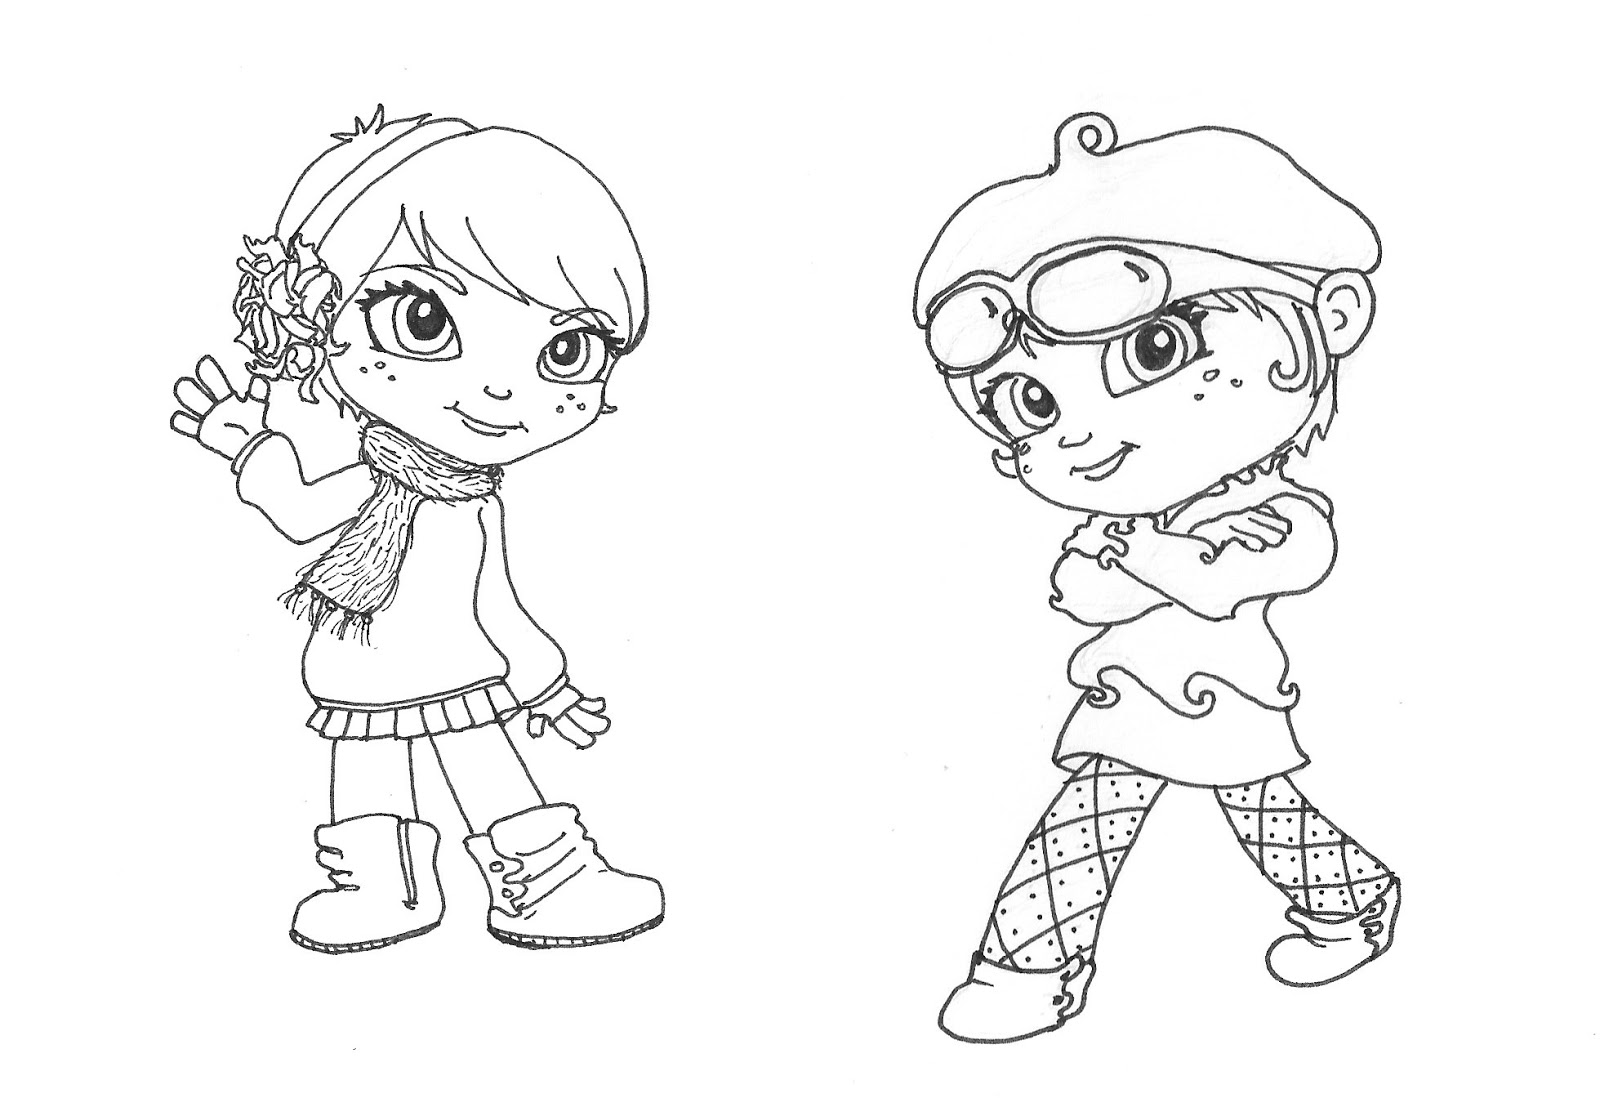 sugar rush coloring pages - photo#38